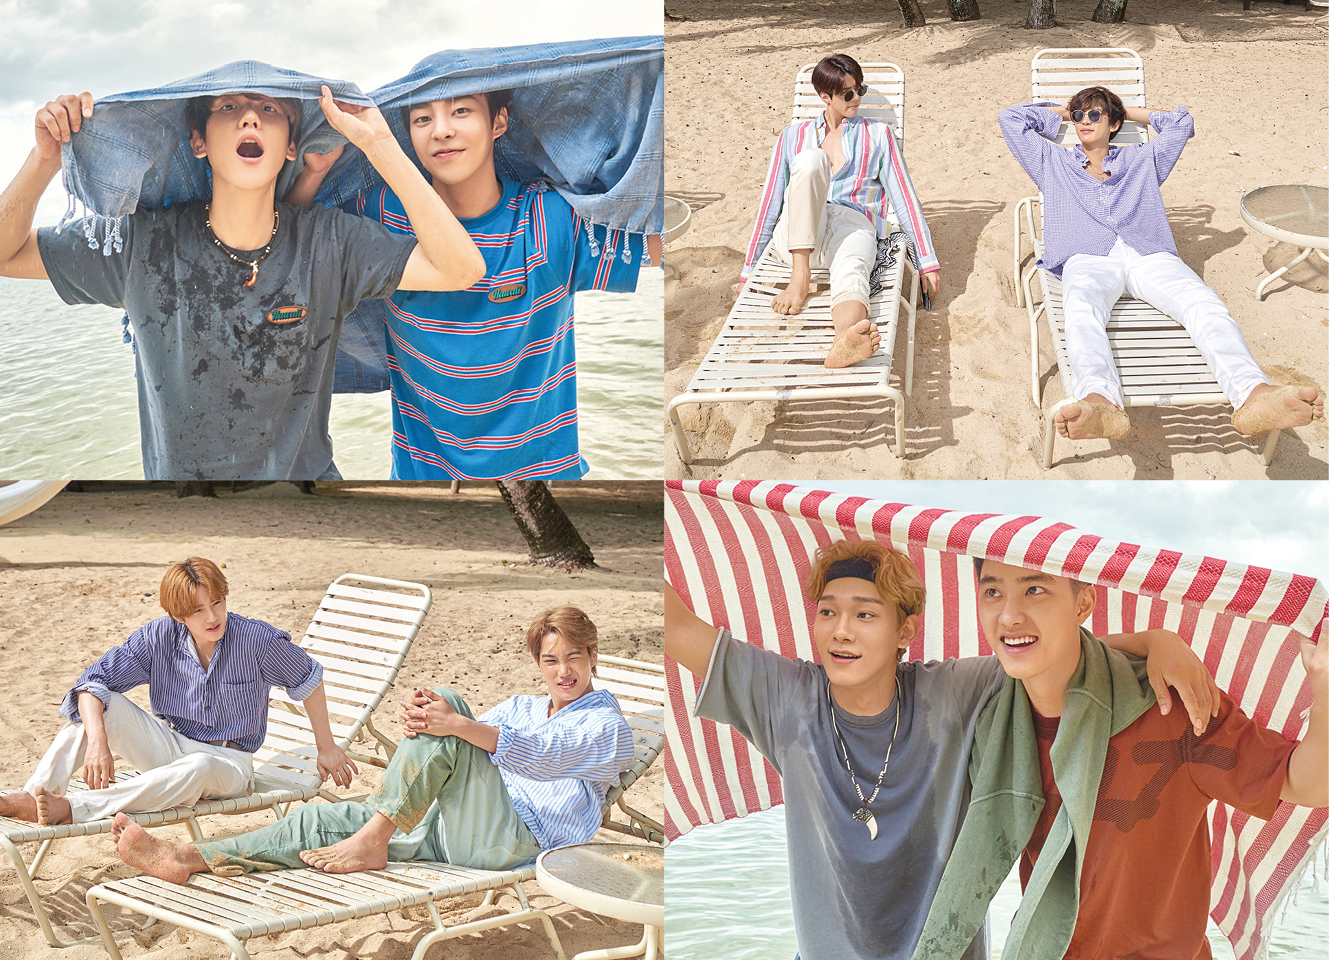 <p>EXO(EXO, SM Entertainment and affiliation)of the second Hawaii White 'PRESENT ; the moment'(the day ; the more cement)with 9 and 10 will be released.</p><p>This time, the White Sea, grassland, etc Hawaii is the perfect place to travel to and 20 for the youth of the moment, enjoying the EXO members, their cheerful and lively look to our colorful and comfortable.</p><p>ALSO EXOs Hawaii pictorial collection 'PRESENT'is a two concept, planning and production, last 4 November launched the first White, 'PRESENT ; gift'the gift, such as a break to savor the EXO stunning look of our much-loved is as much as, another charm, this time White, Again, fans of the good reaction is anticipated.</p><p>The addition of 'PRESENT ; the moment'today(22nd)from various online music stores on the reservation purchase is possible.</p><p>iMBC car Hye images | pictures provided by=SM Entertainment</p>